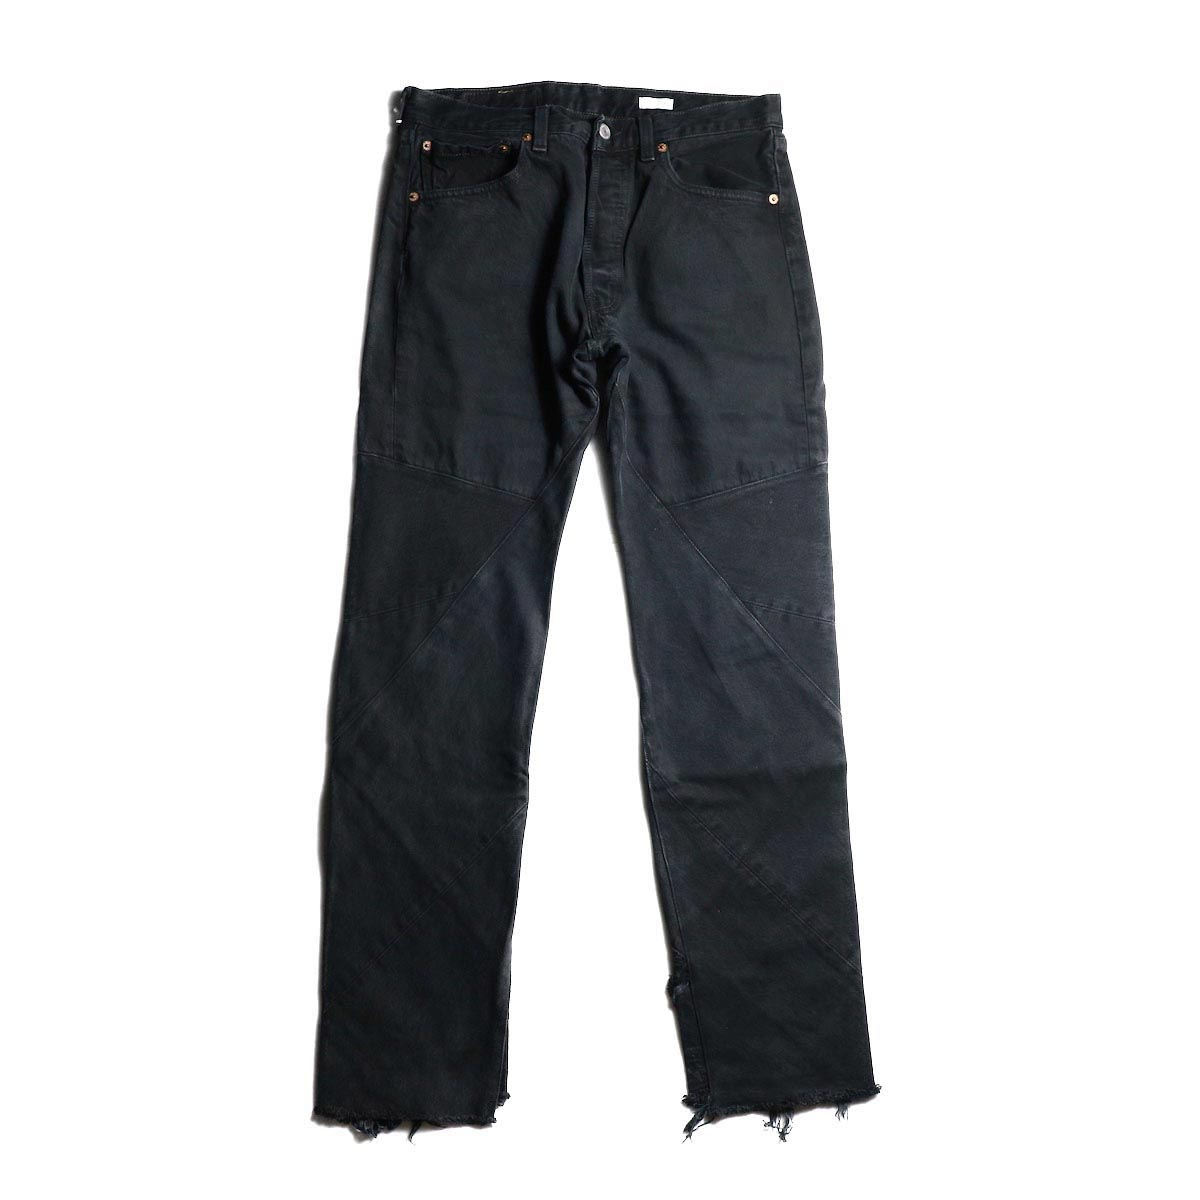 OLD PARK / SHIFT JEANS (Msize-D)